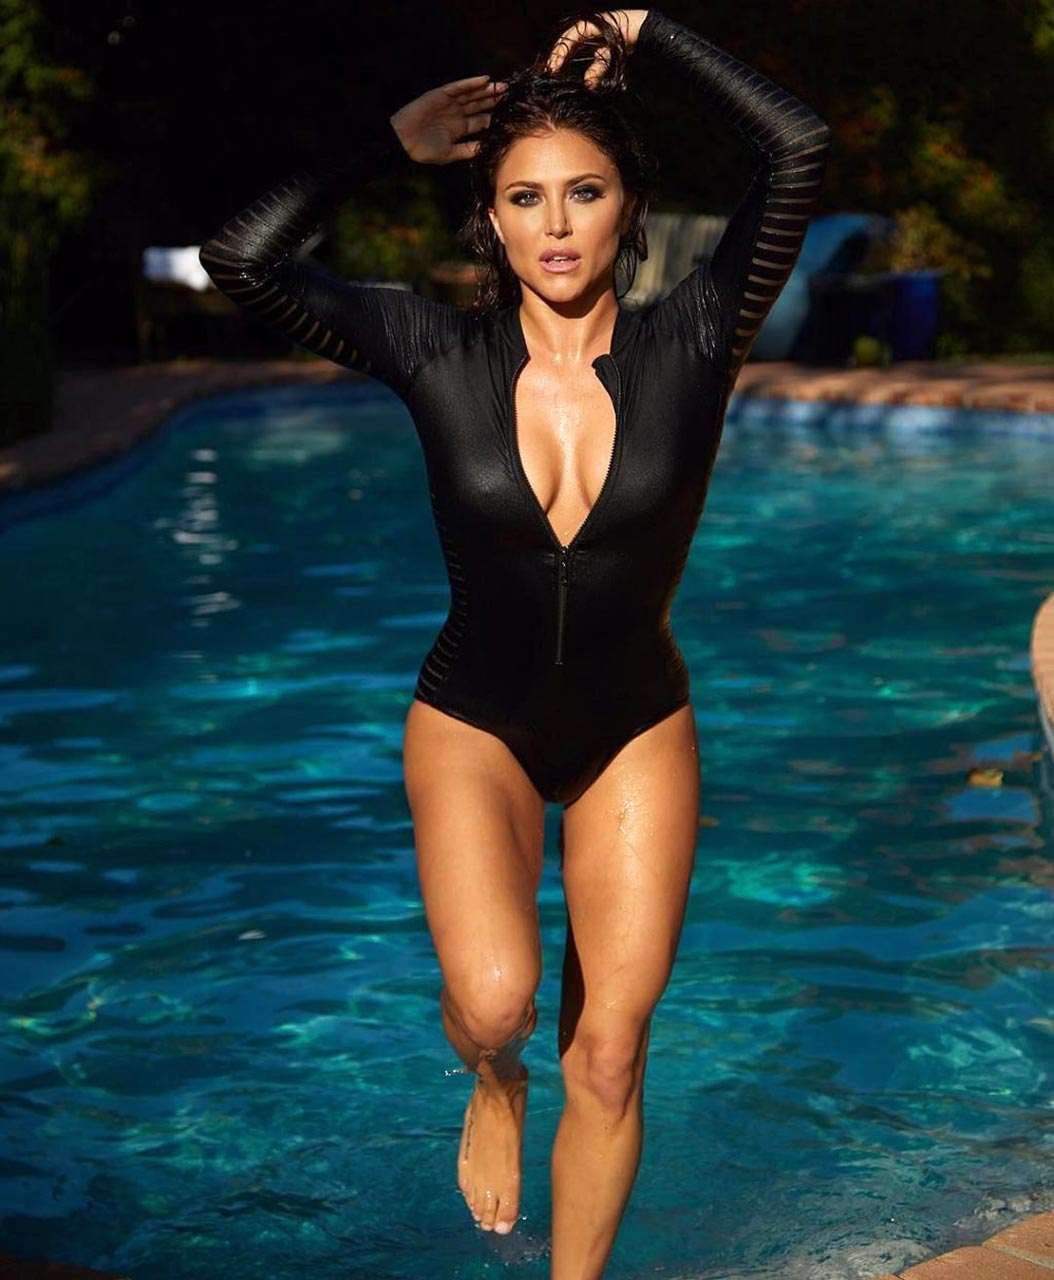 Cassie Scerbo Sexy Photos Collection - Scandal Planet